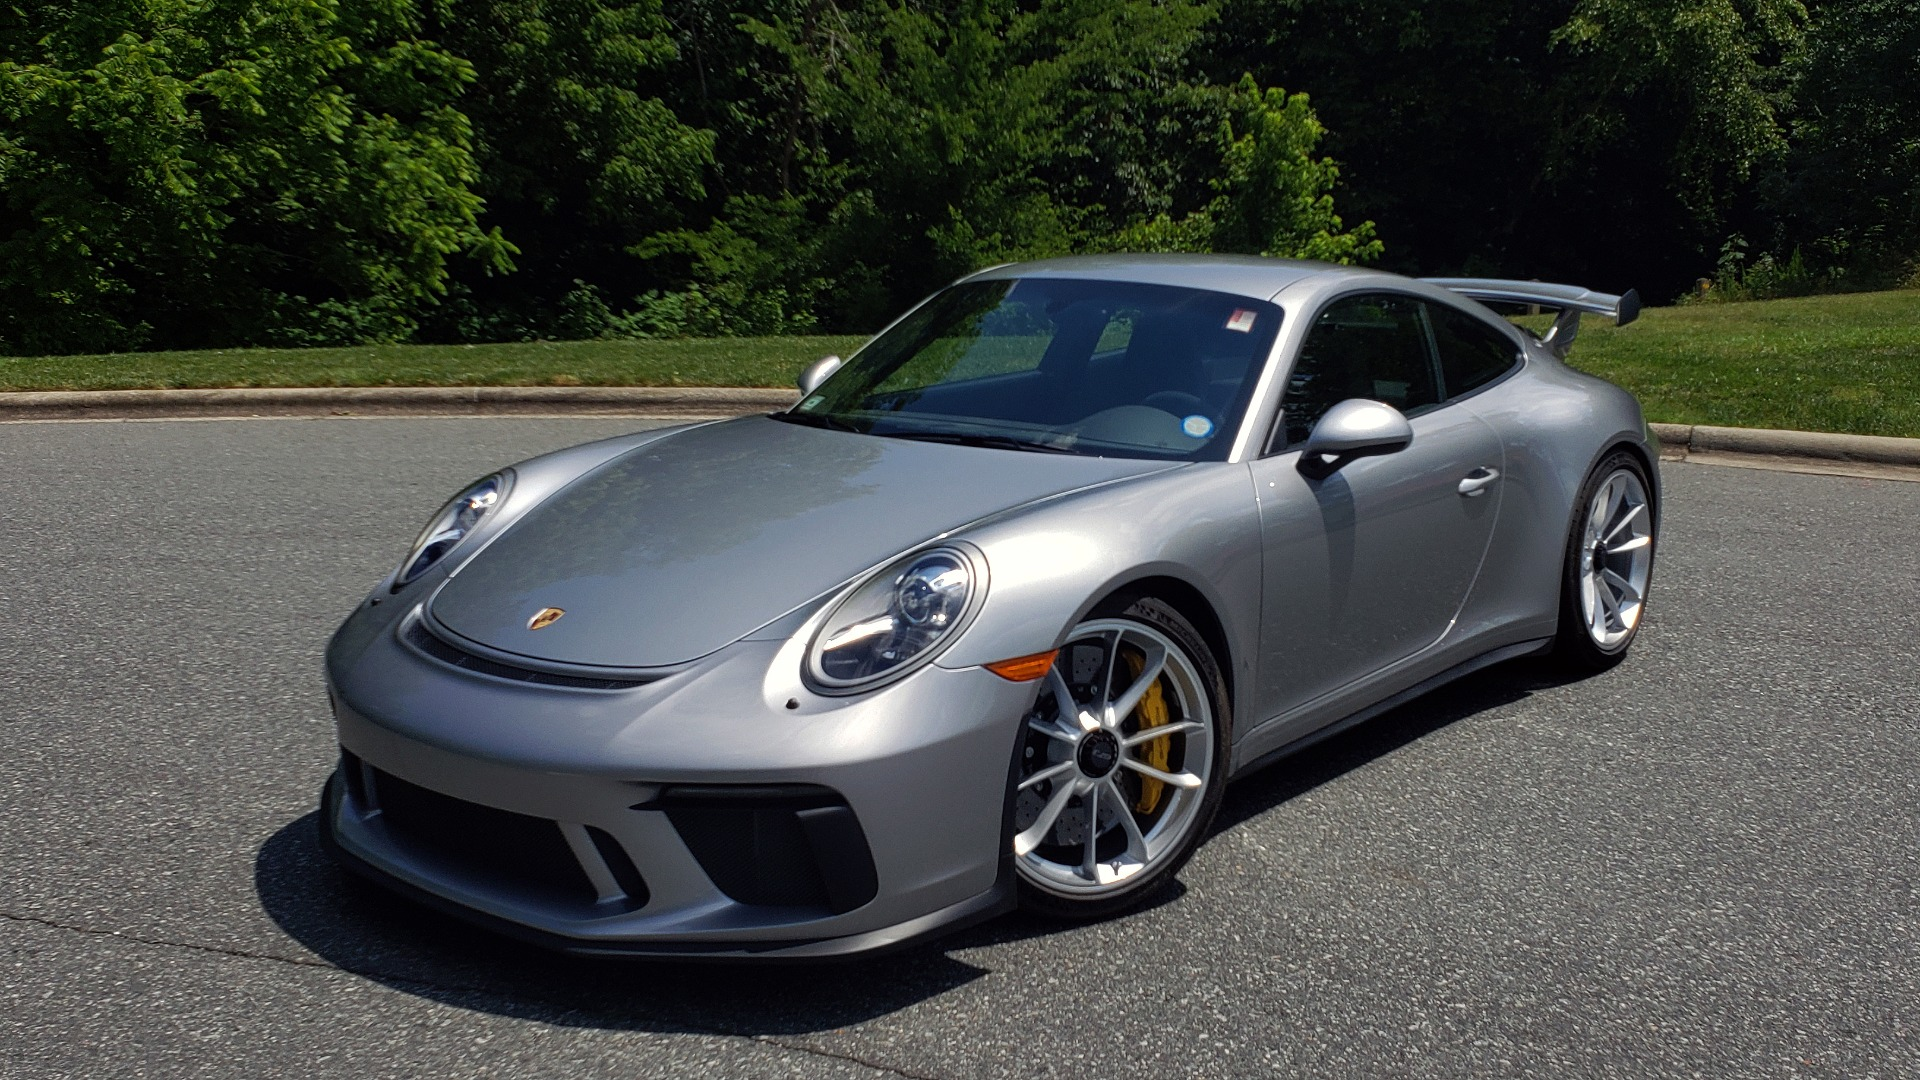 Used 2018 Porsche 911 GT3 4.0L 500HP / 6-SPD MNL / NAV / REARVIEW / PCCB for sale Sold at Formula Imports in Charlotte NC 28227 1